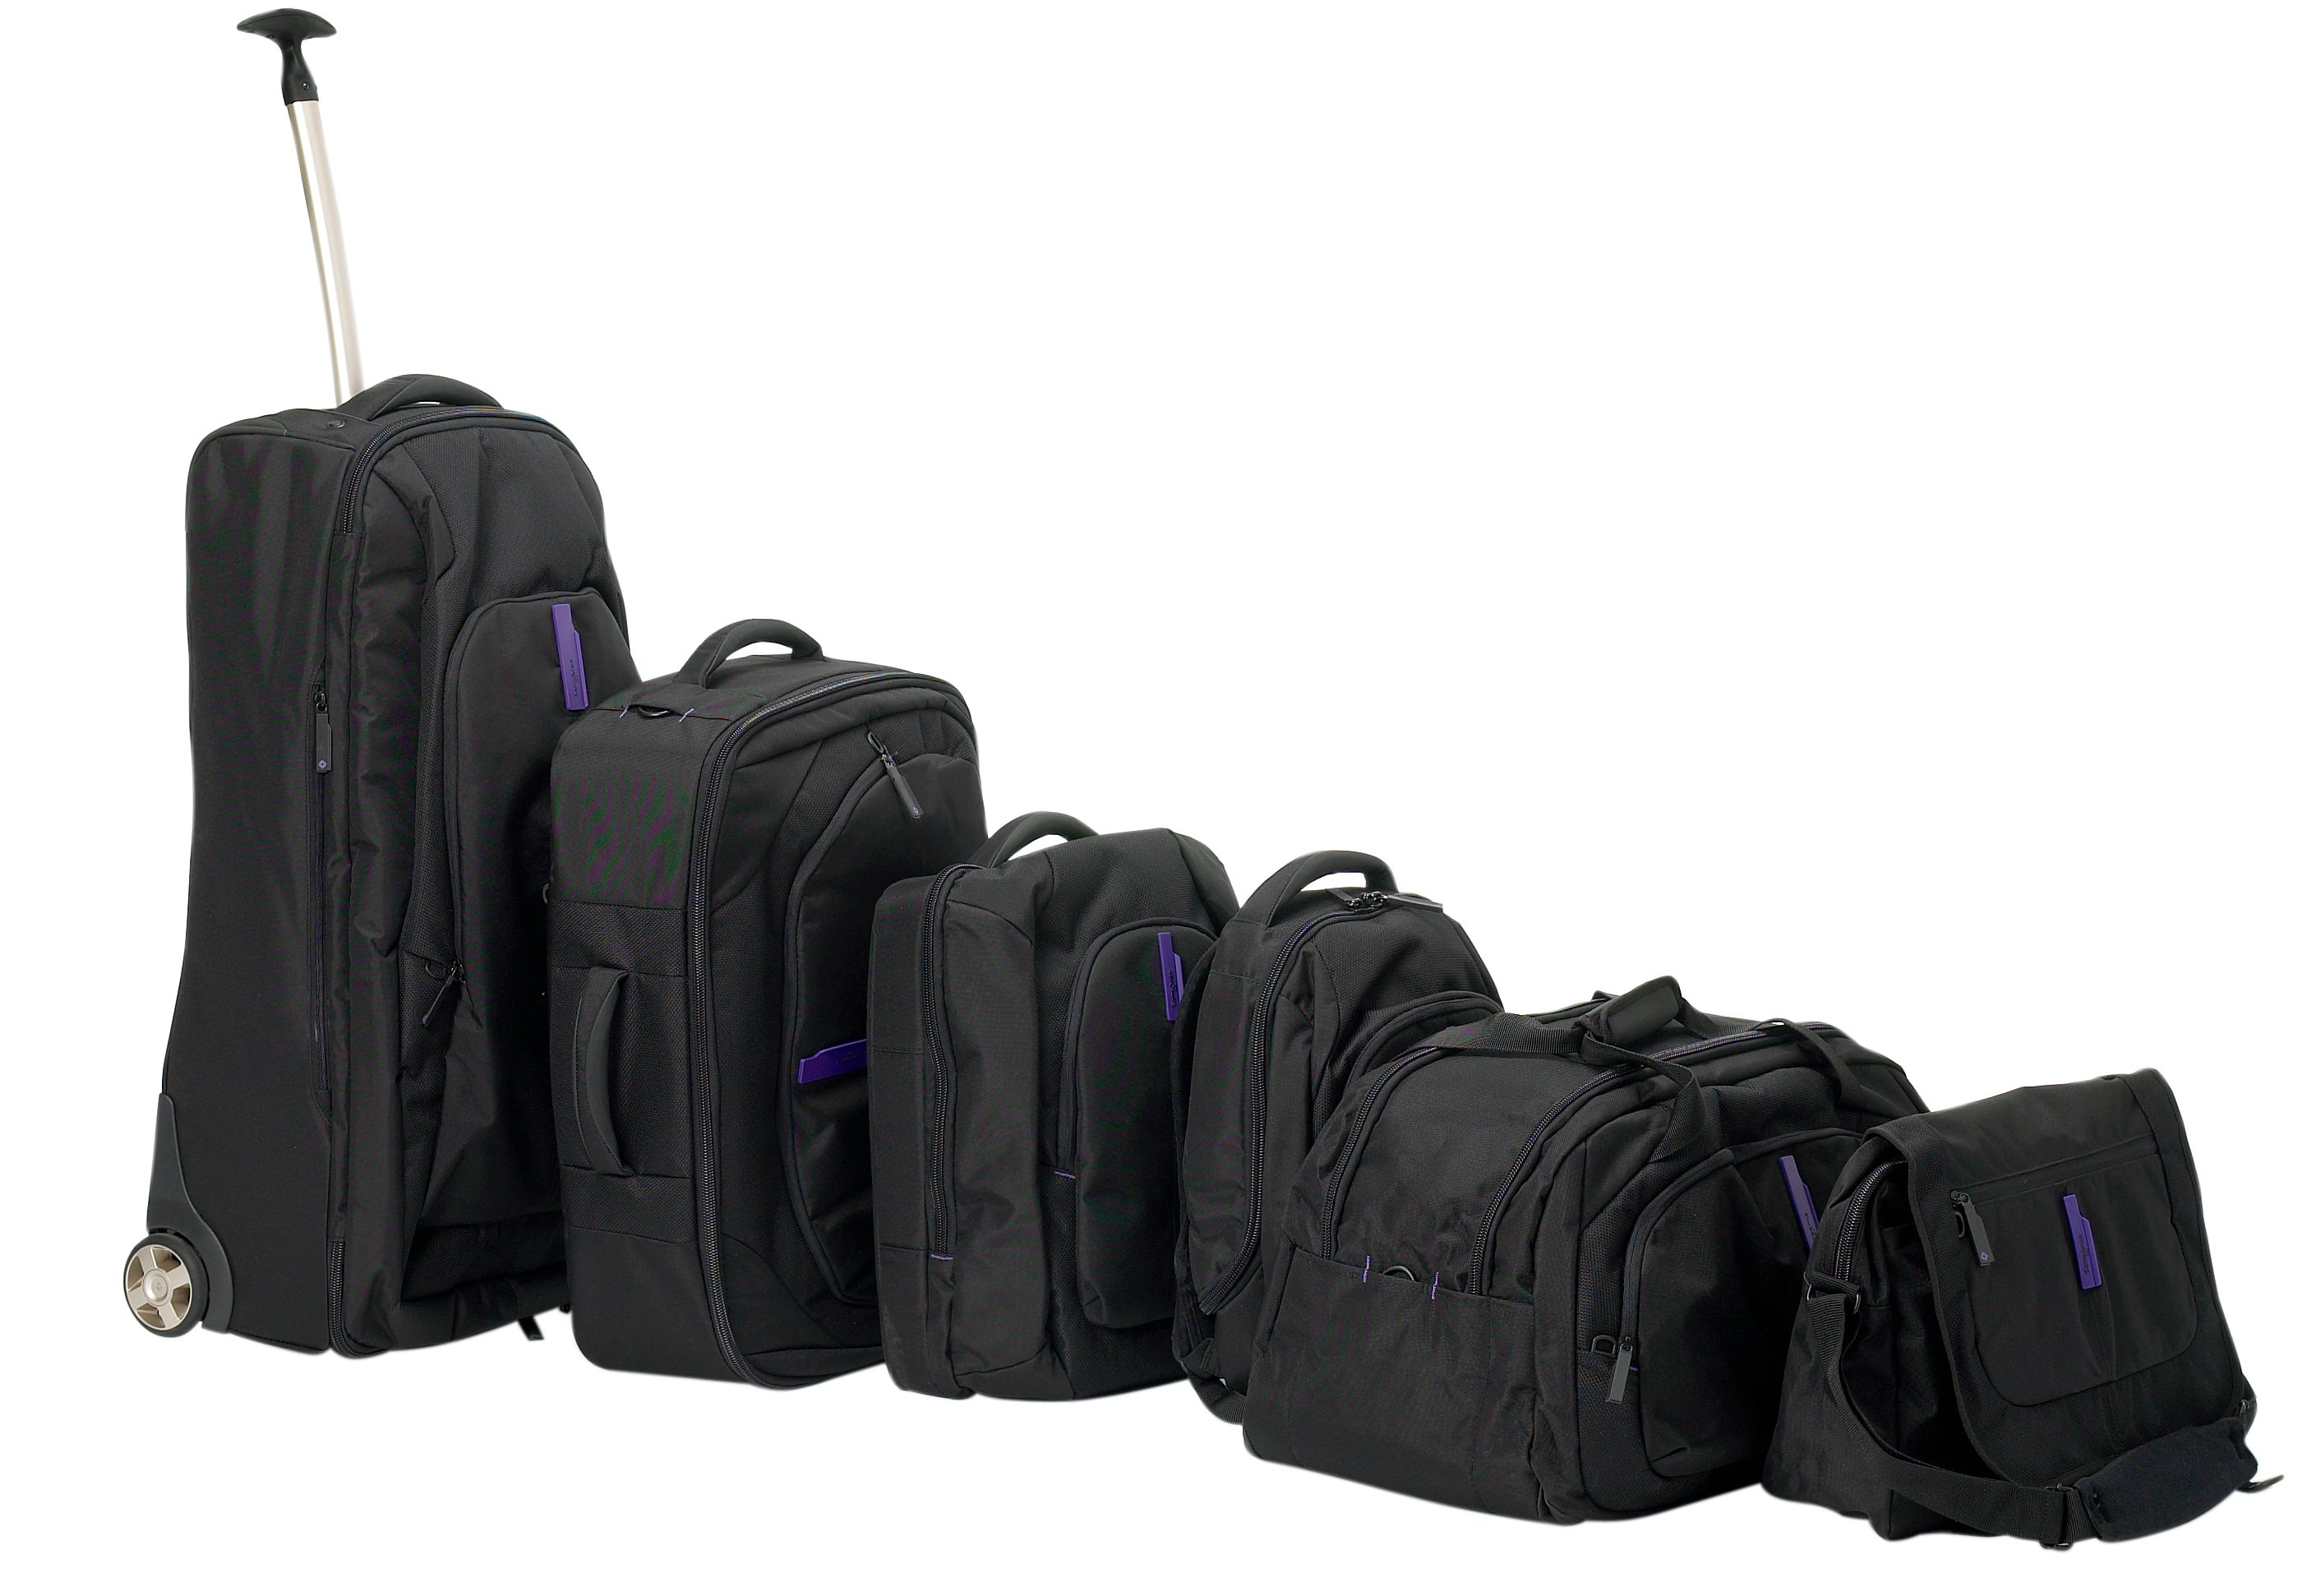 Freeminder soft side laptop backpack